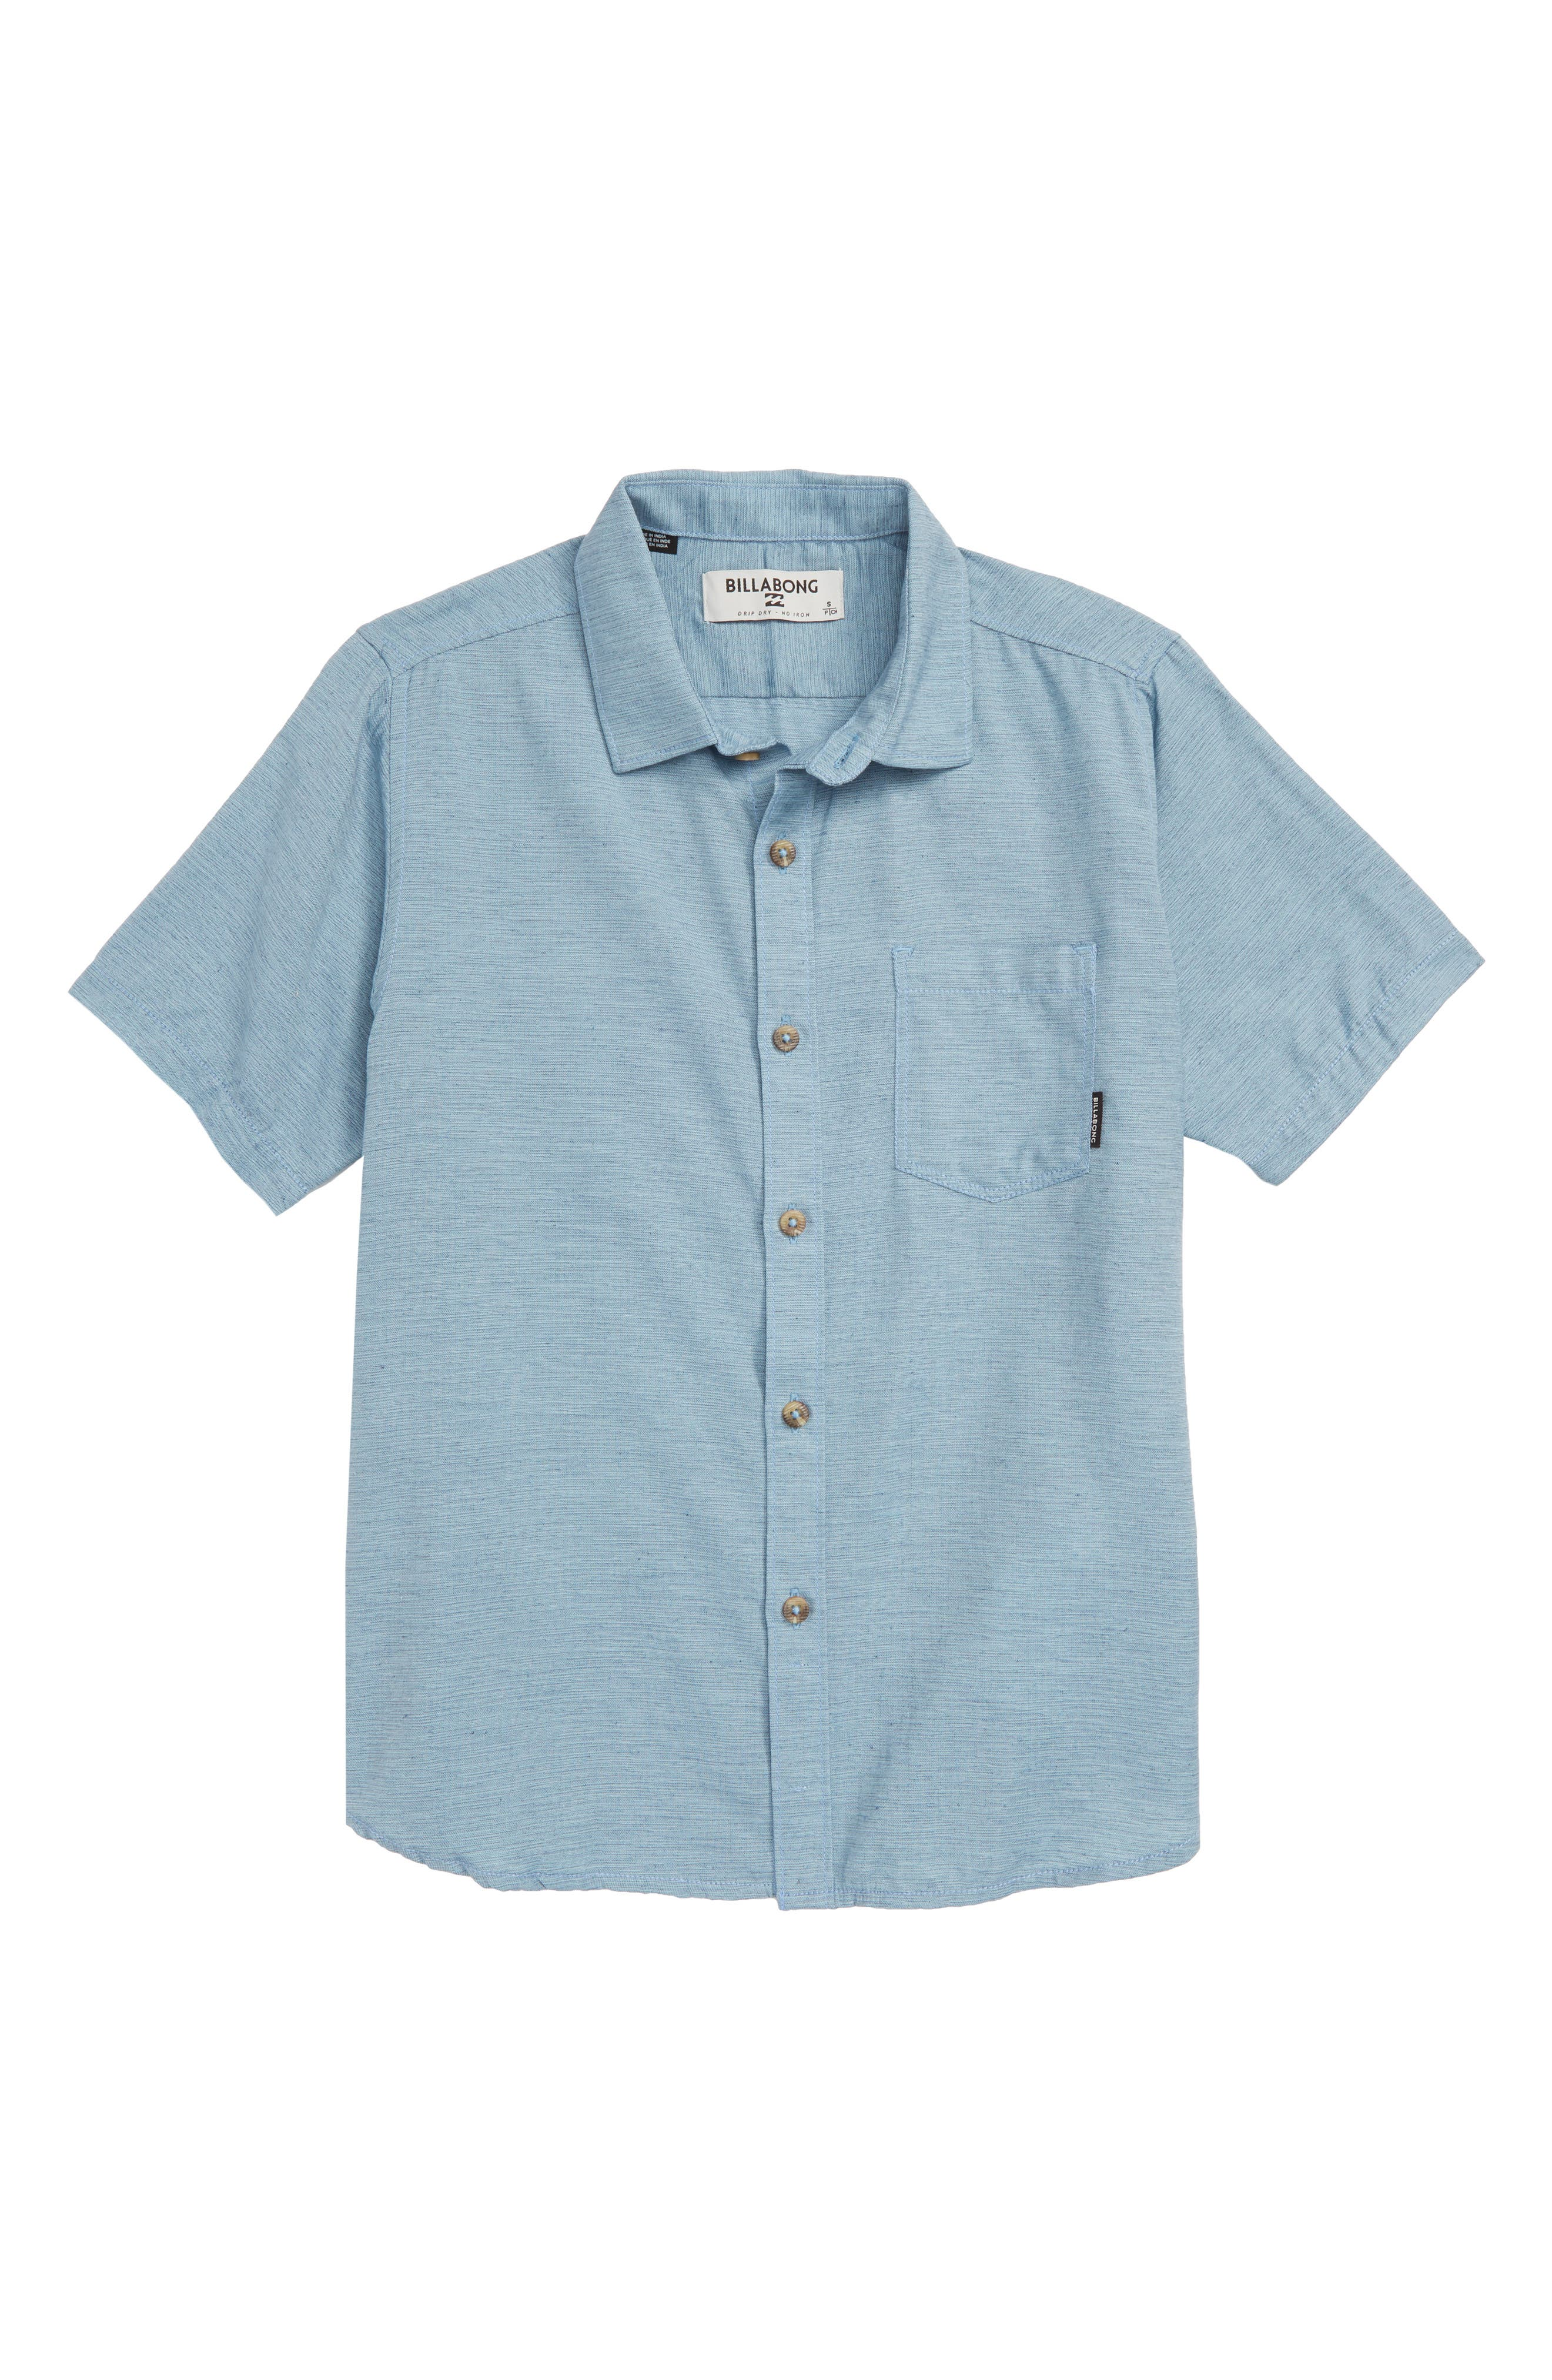 All Day Helix Woven Shirt,                         Main,                         color, WASHED BLUE